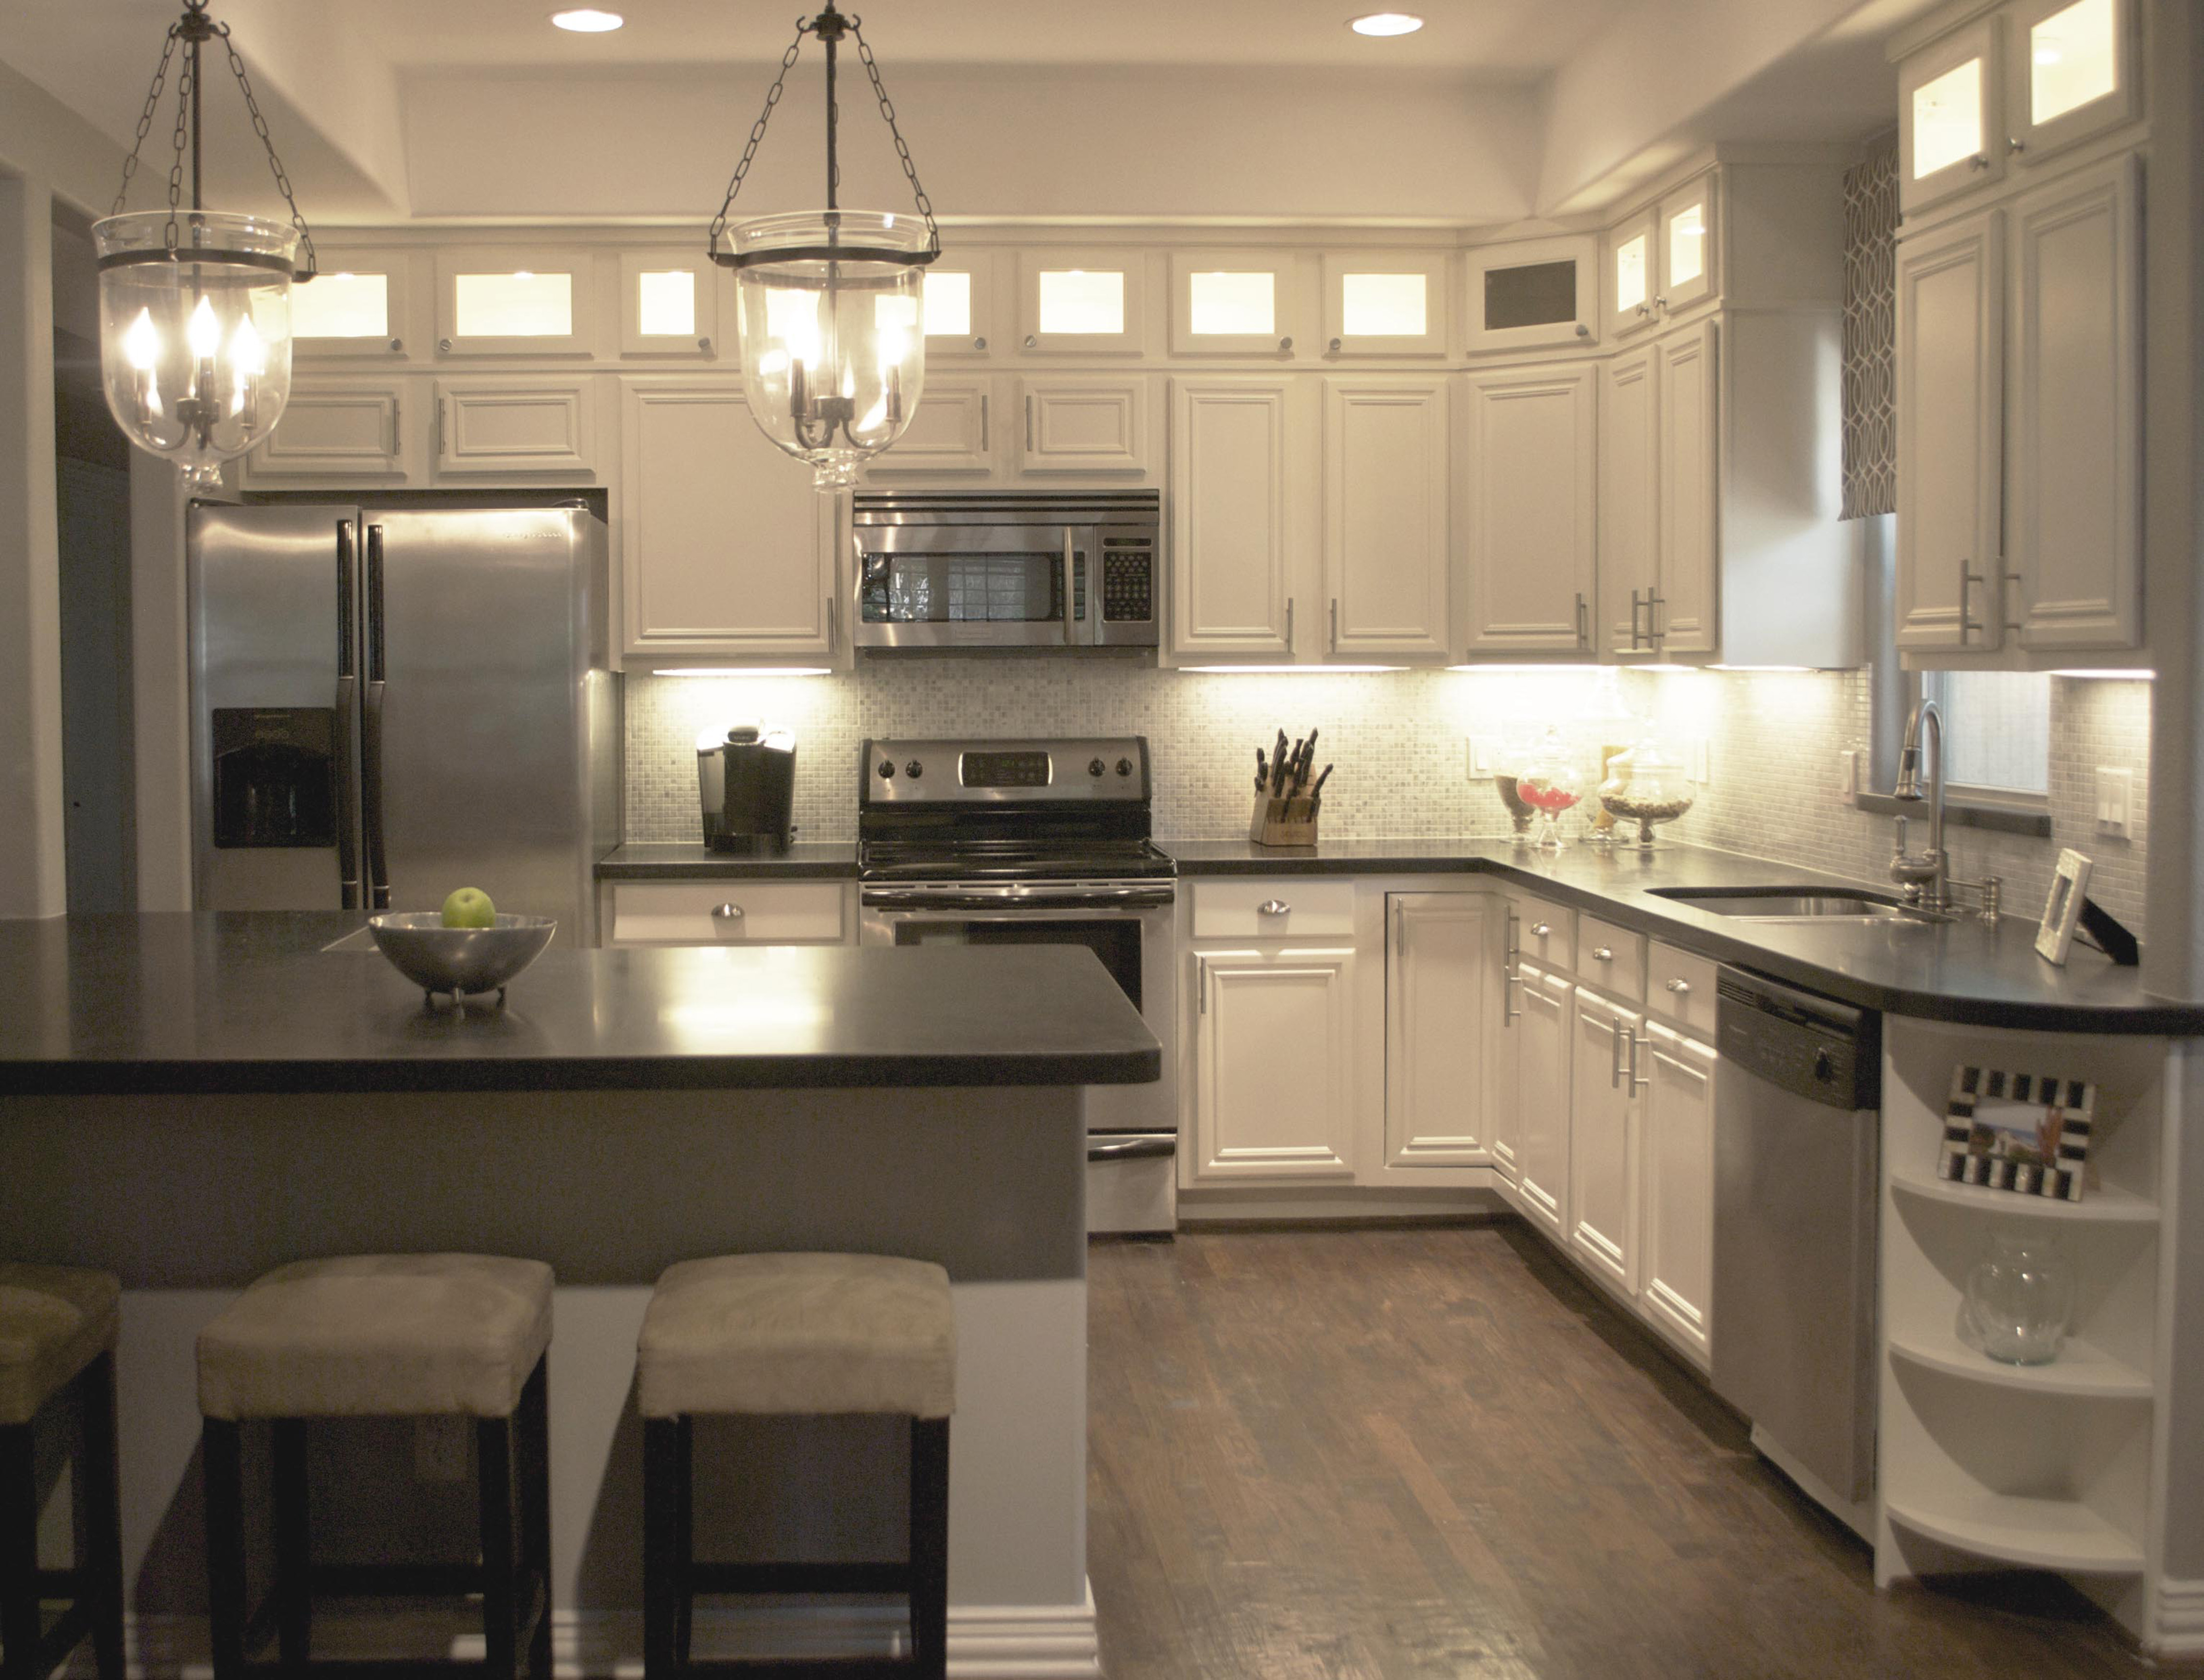 northernvalleyconstructioninc kitchen remodeling contractor CONSTRUCTION RESOURCE CENTER